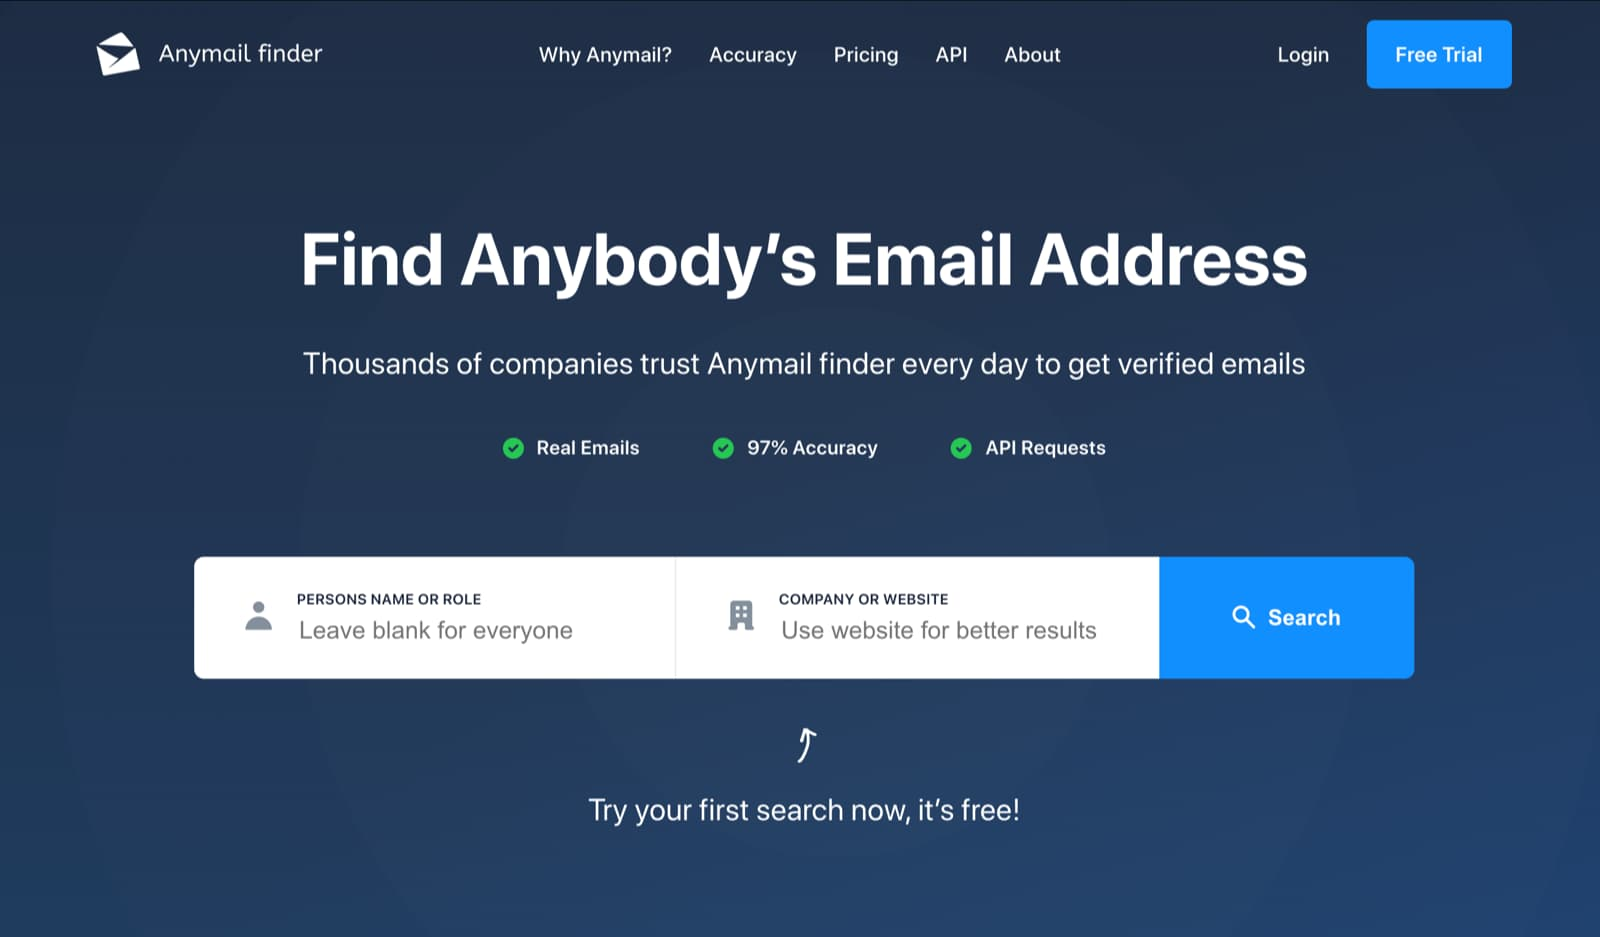 anymailfinder.com find anybodys email address